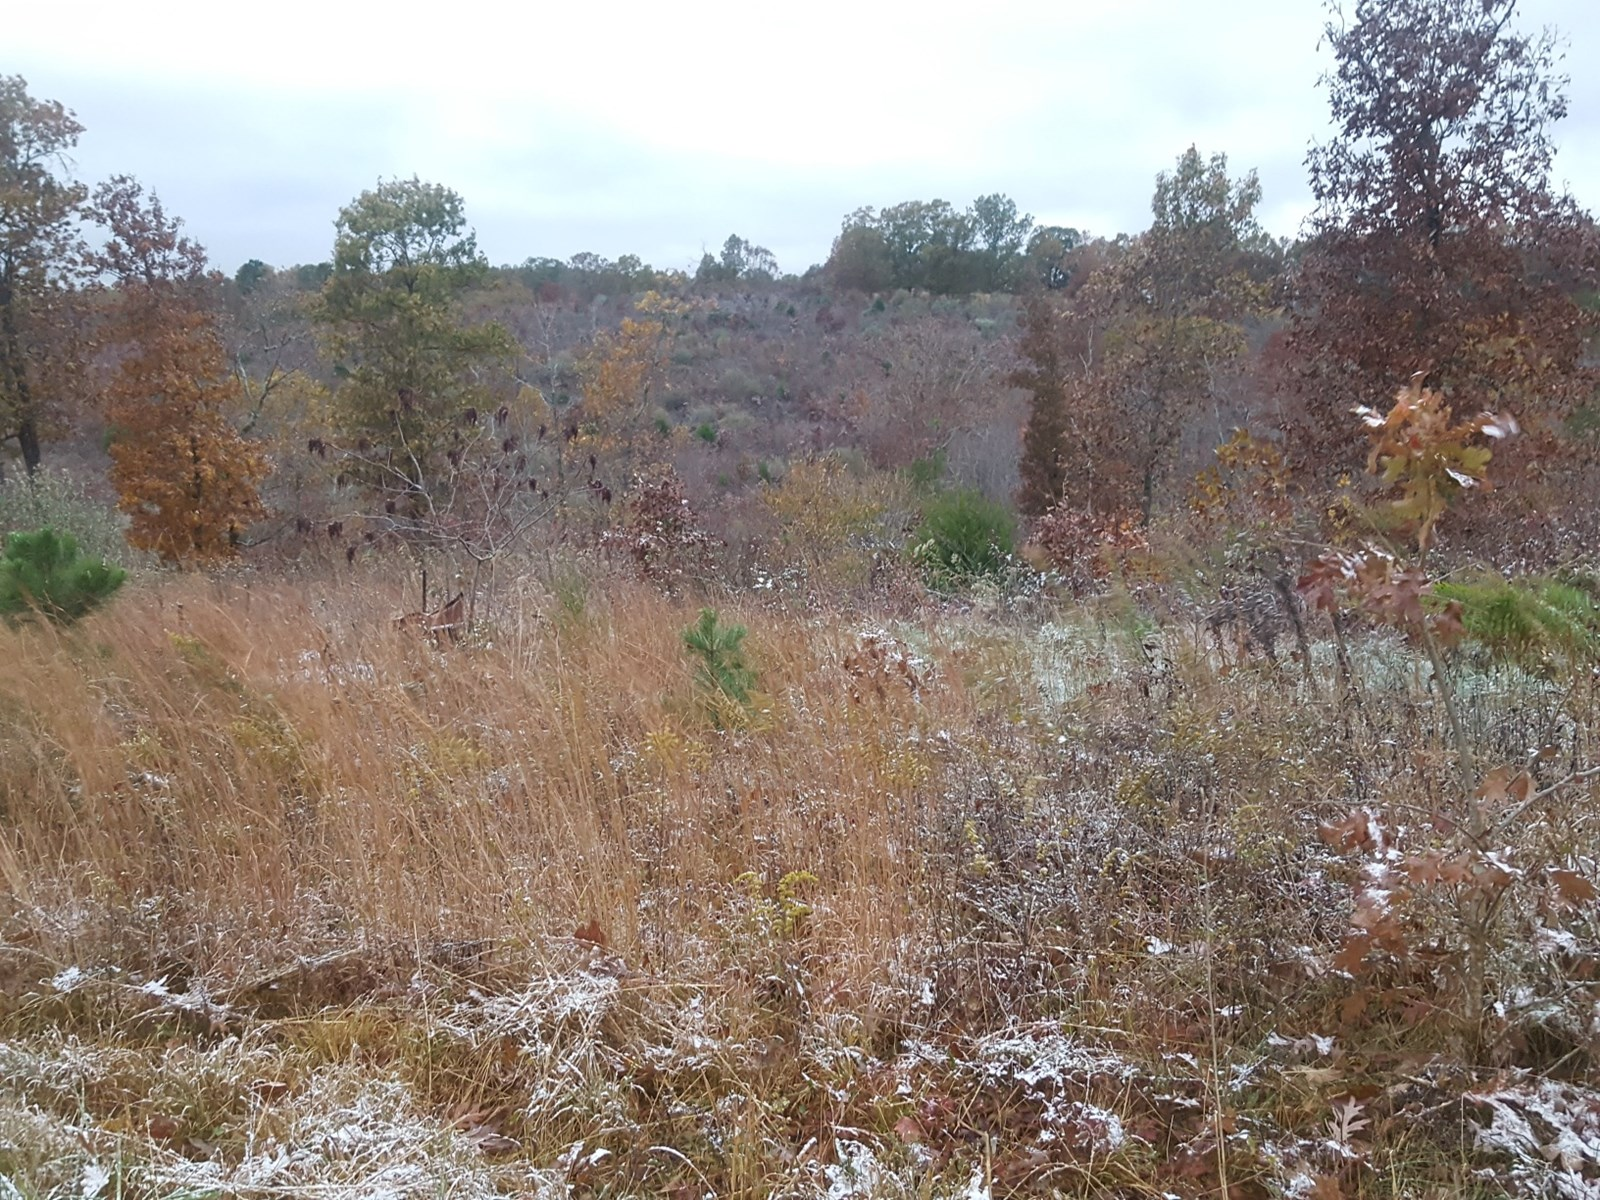 Land for Sale in the South Central Missouri Ozarks